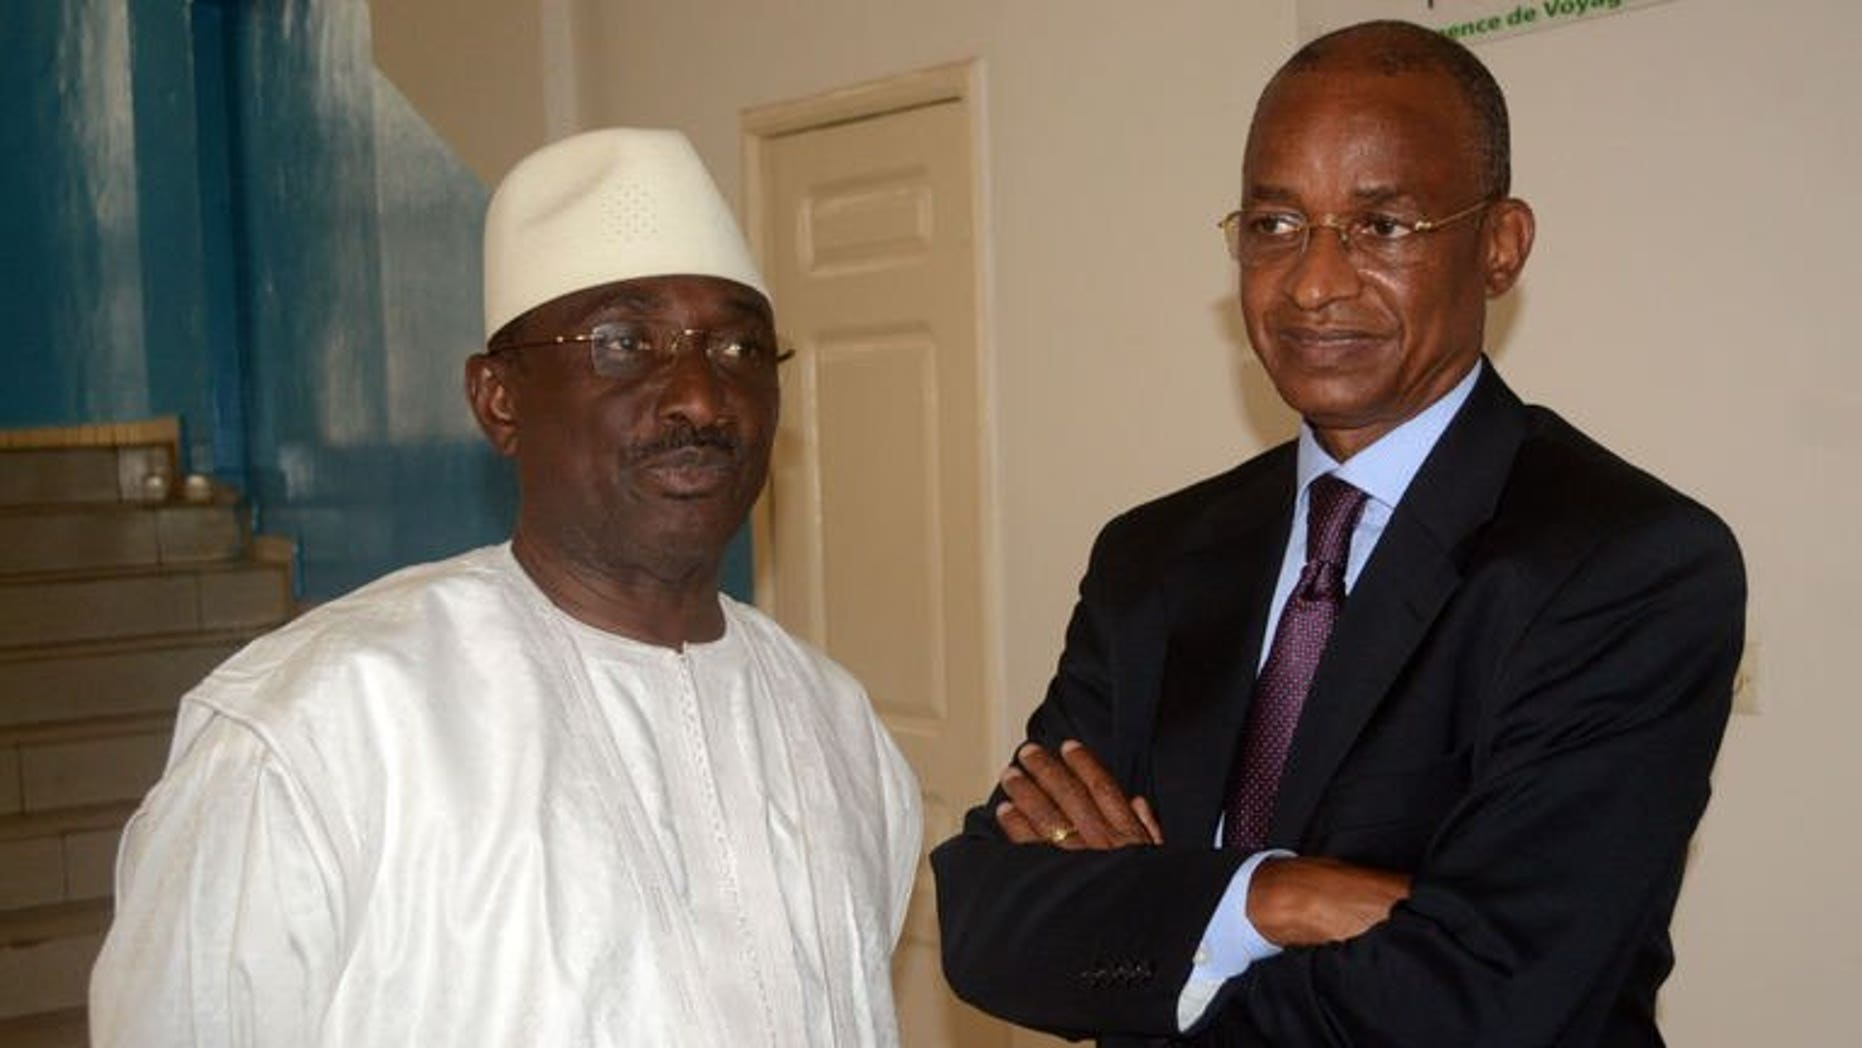 Guinea's main opposition leader Cellou Dalein Diallo (R) and the leader of the Republican Forces Union party Sidya Toure pose on September 20, 2013 following their meeting with the US ambassador to Guinea and the UN mediator for Guinea in Conakry ahead of the September 24 legislative elections.